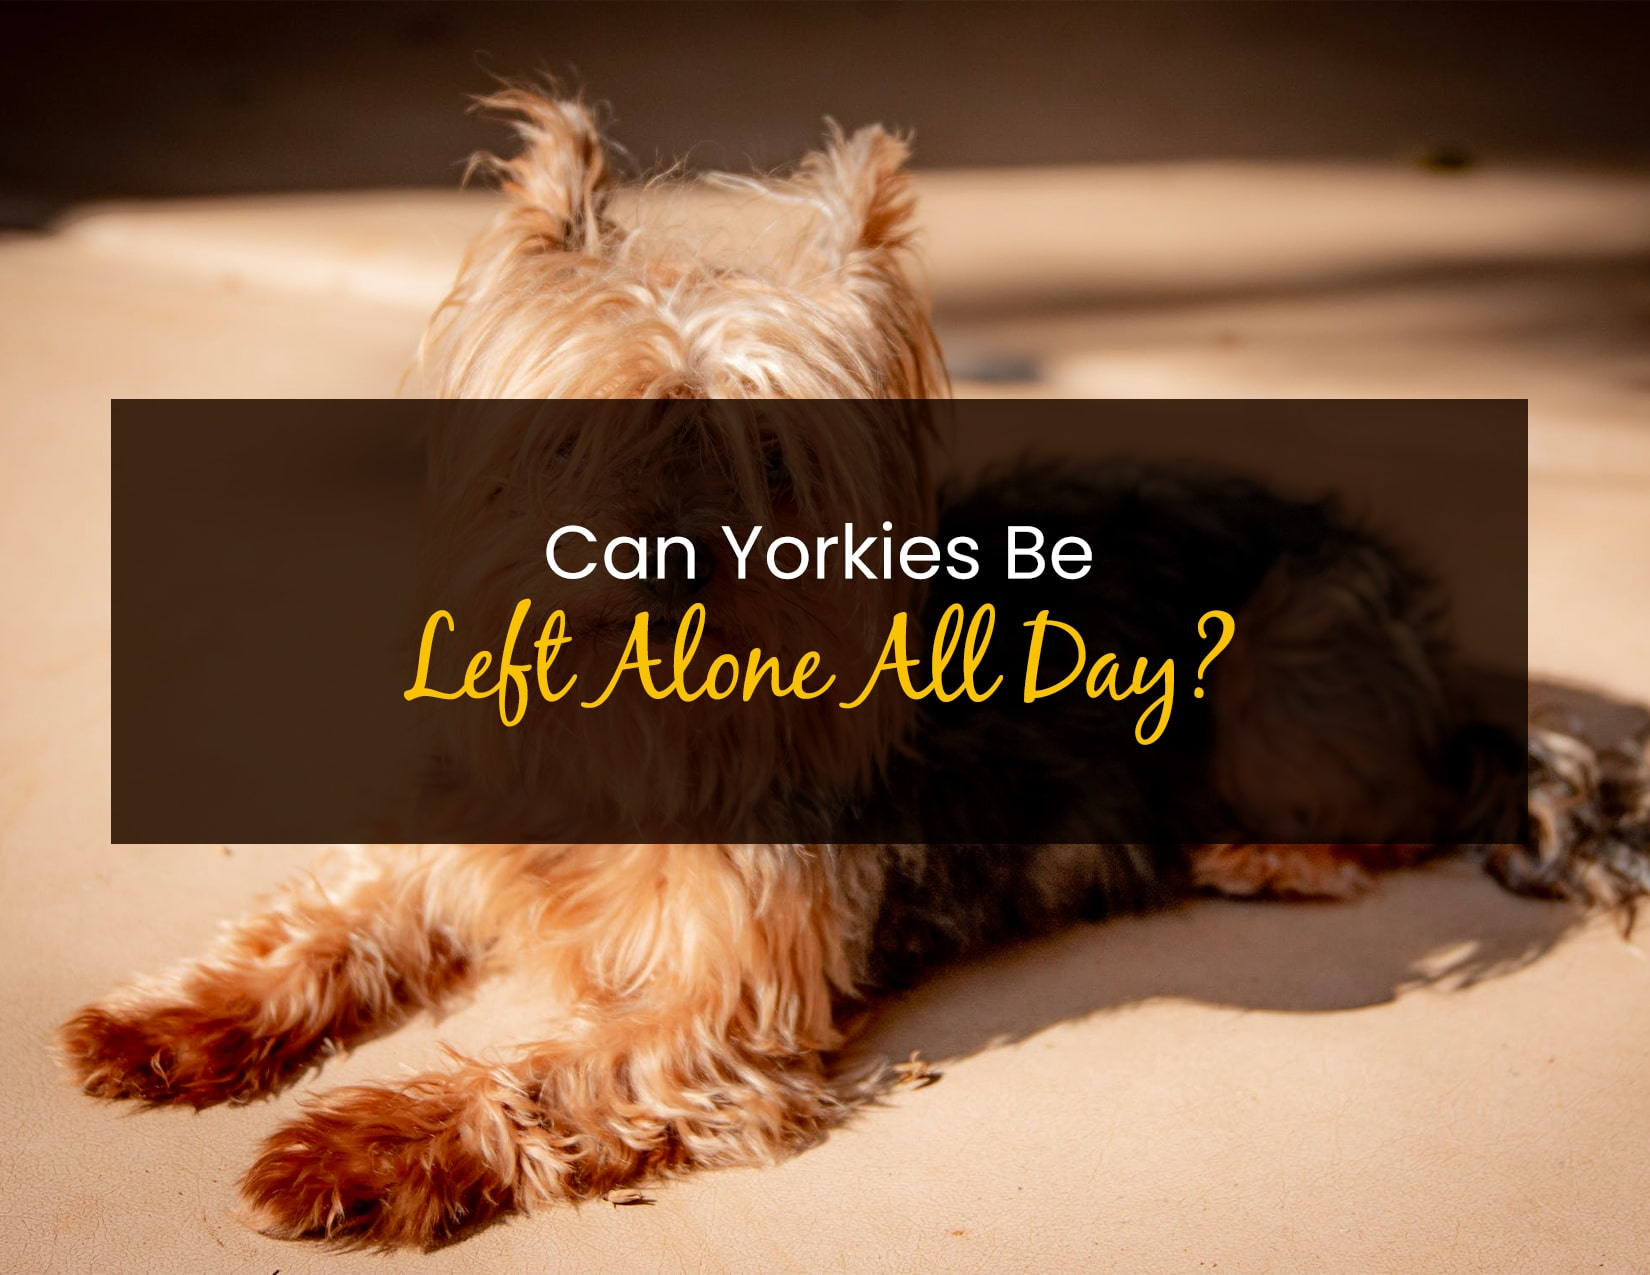 Can Yorkies Be Left Alone